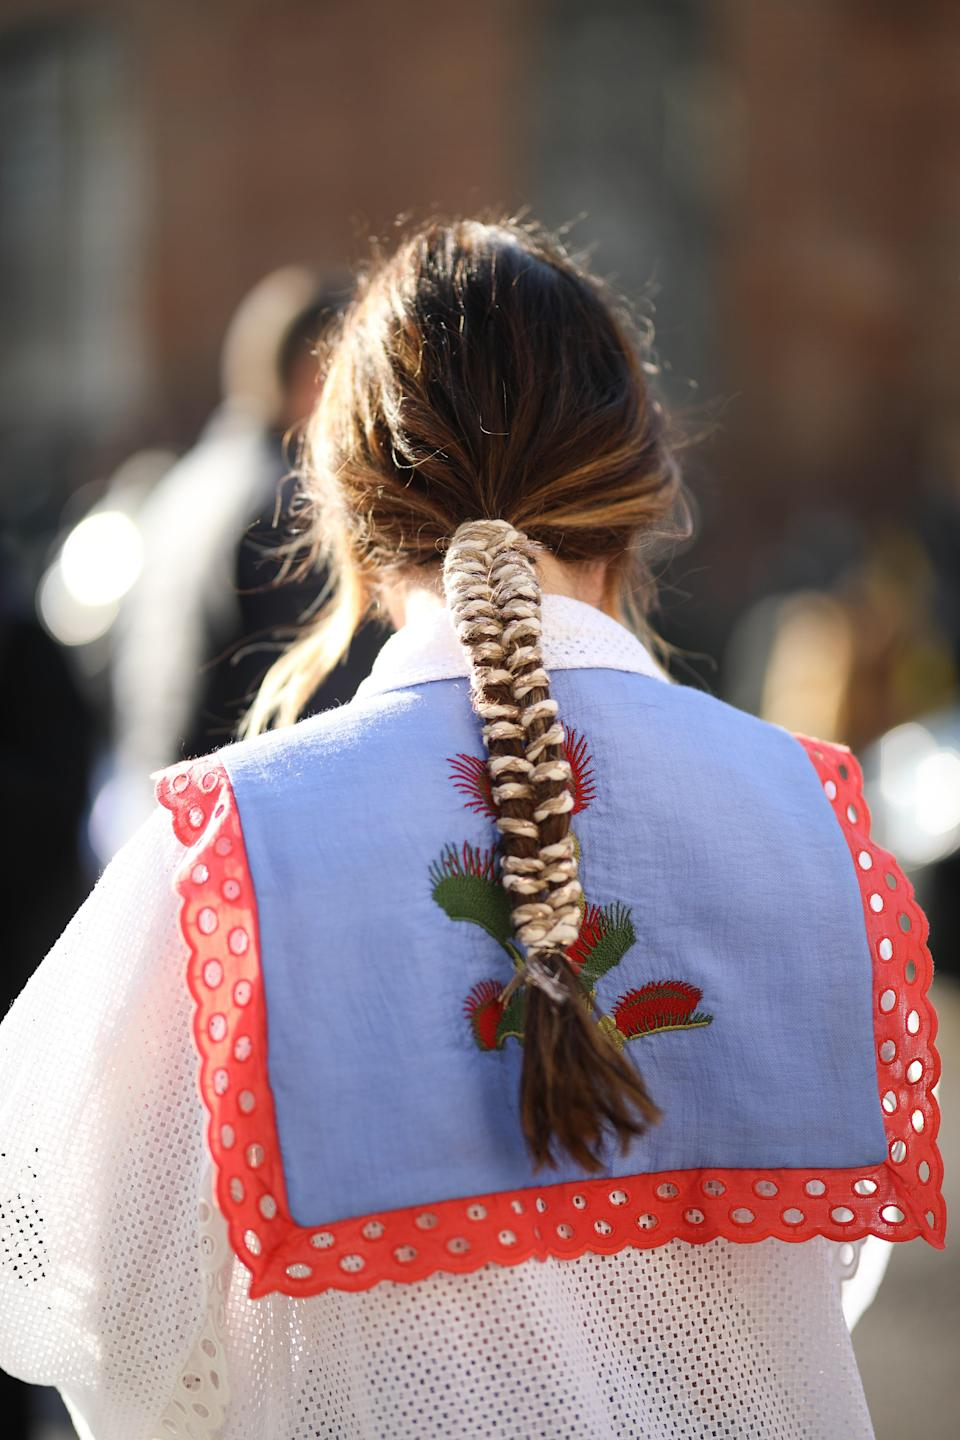 Yet another argument for weaving a ribbon through your braid.